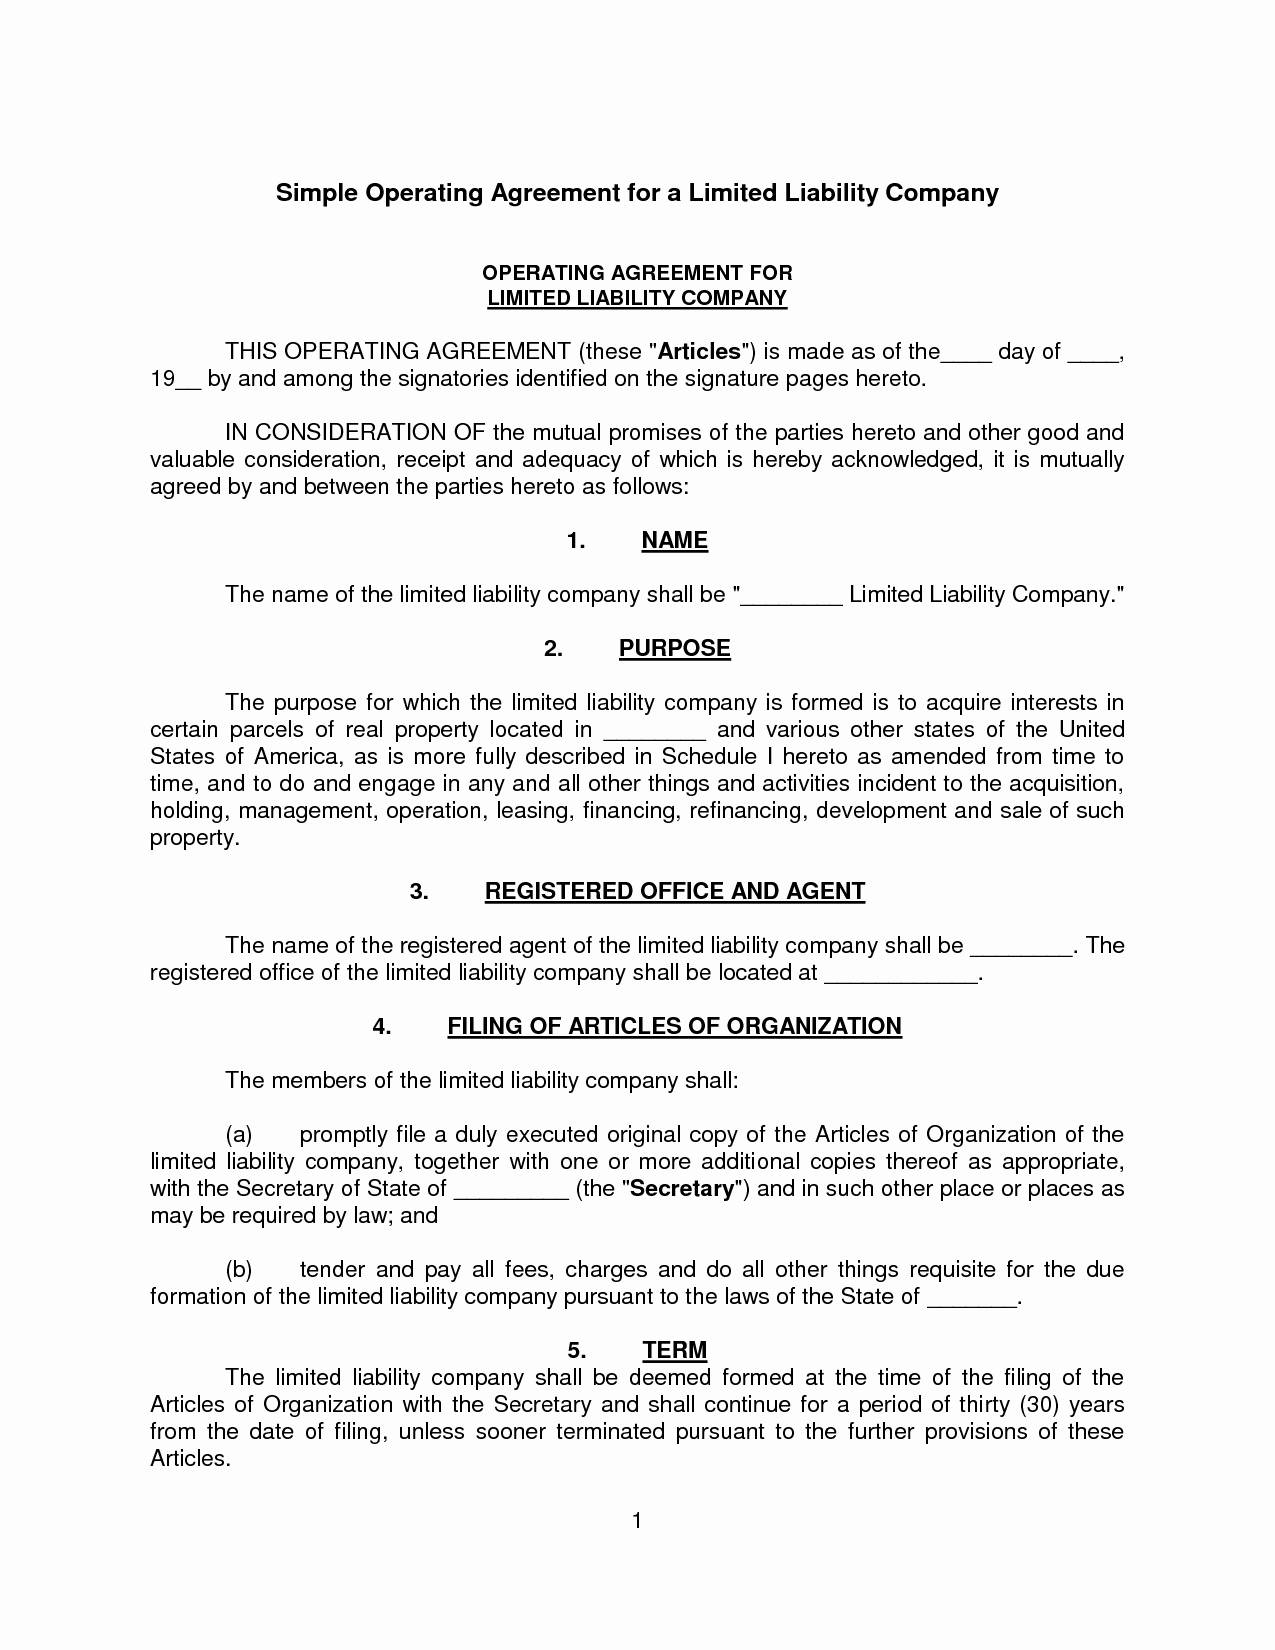 Simple Llc Operating Agreement Template Free